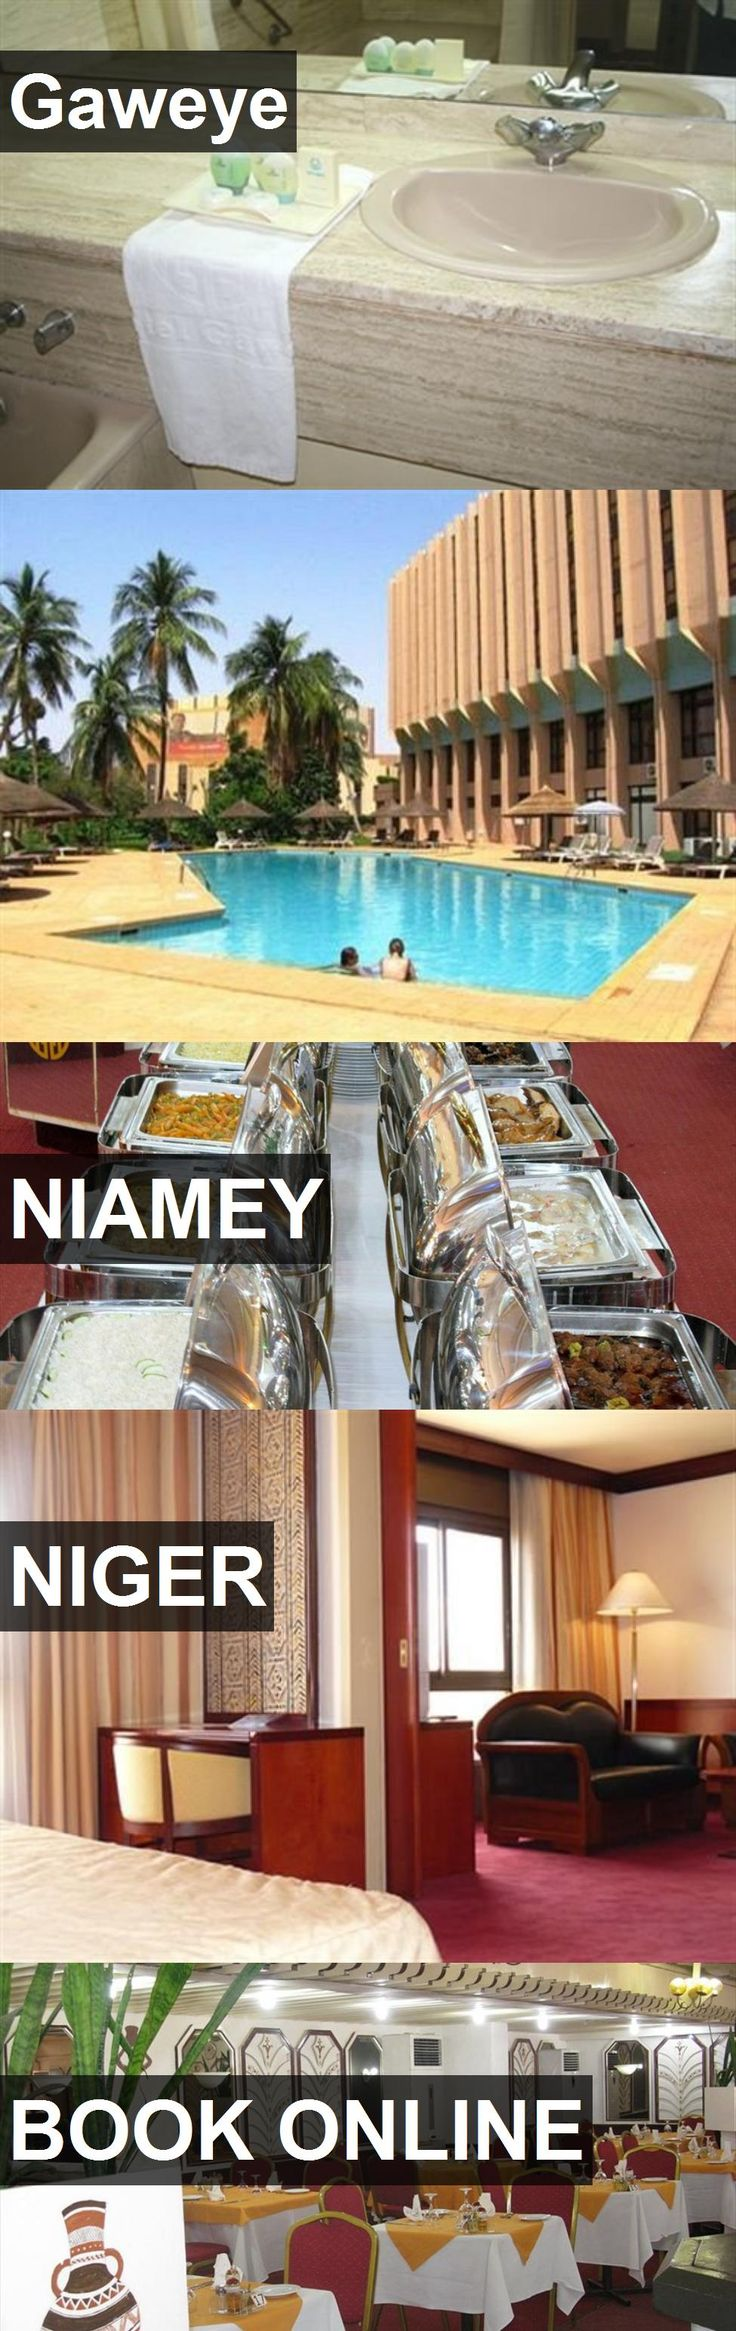 Hotel Gaweye in Niamey, Niger. For more information, photos, reviews and best prices please follow the link. #Niger #Niamey #travel #vacation #hotel